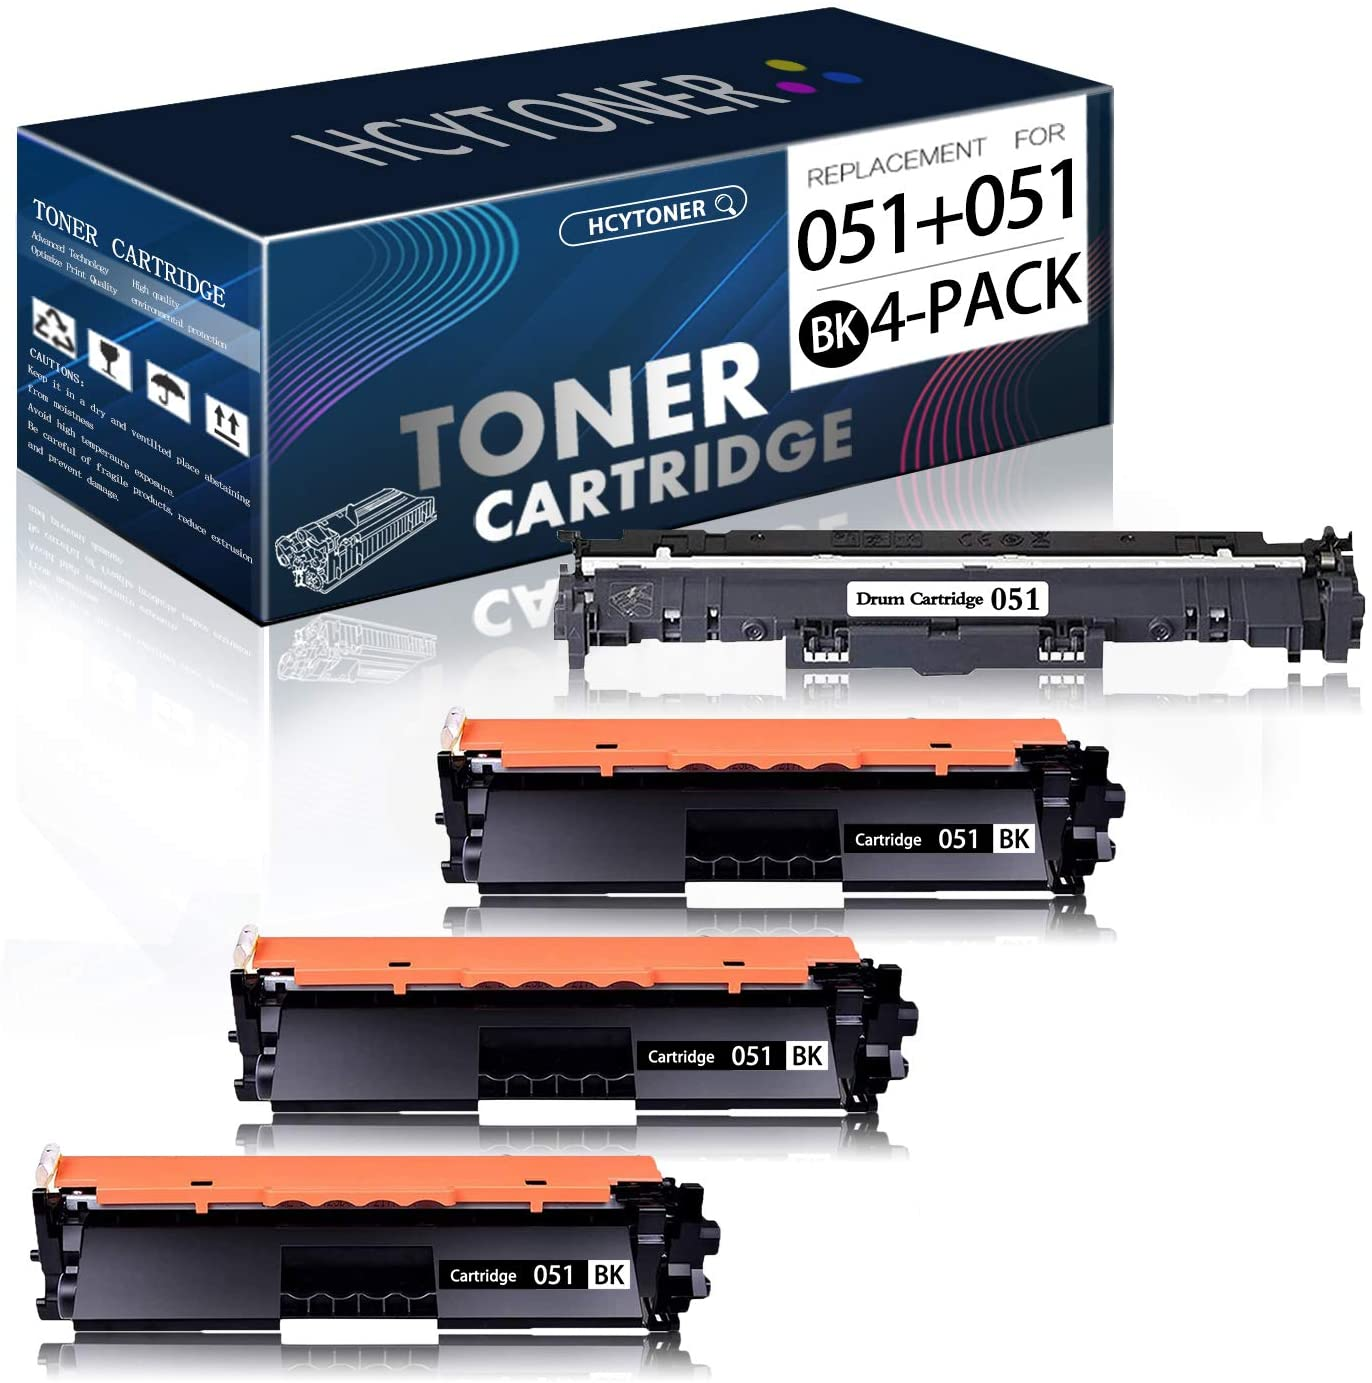 4-Pack Black Compatible (3 Pack 051 Toner Cartridge and 1 Pack 051 Drum Unit) Replacement for Canon ImageCLASS LBP161dw LBP162dw MF263dw MF264dw MF266dw MF267dw MF160/LBP160 Series Printer